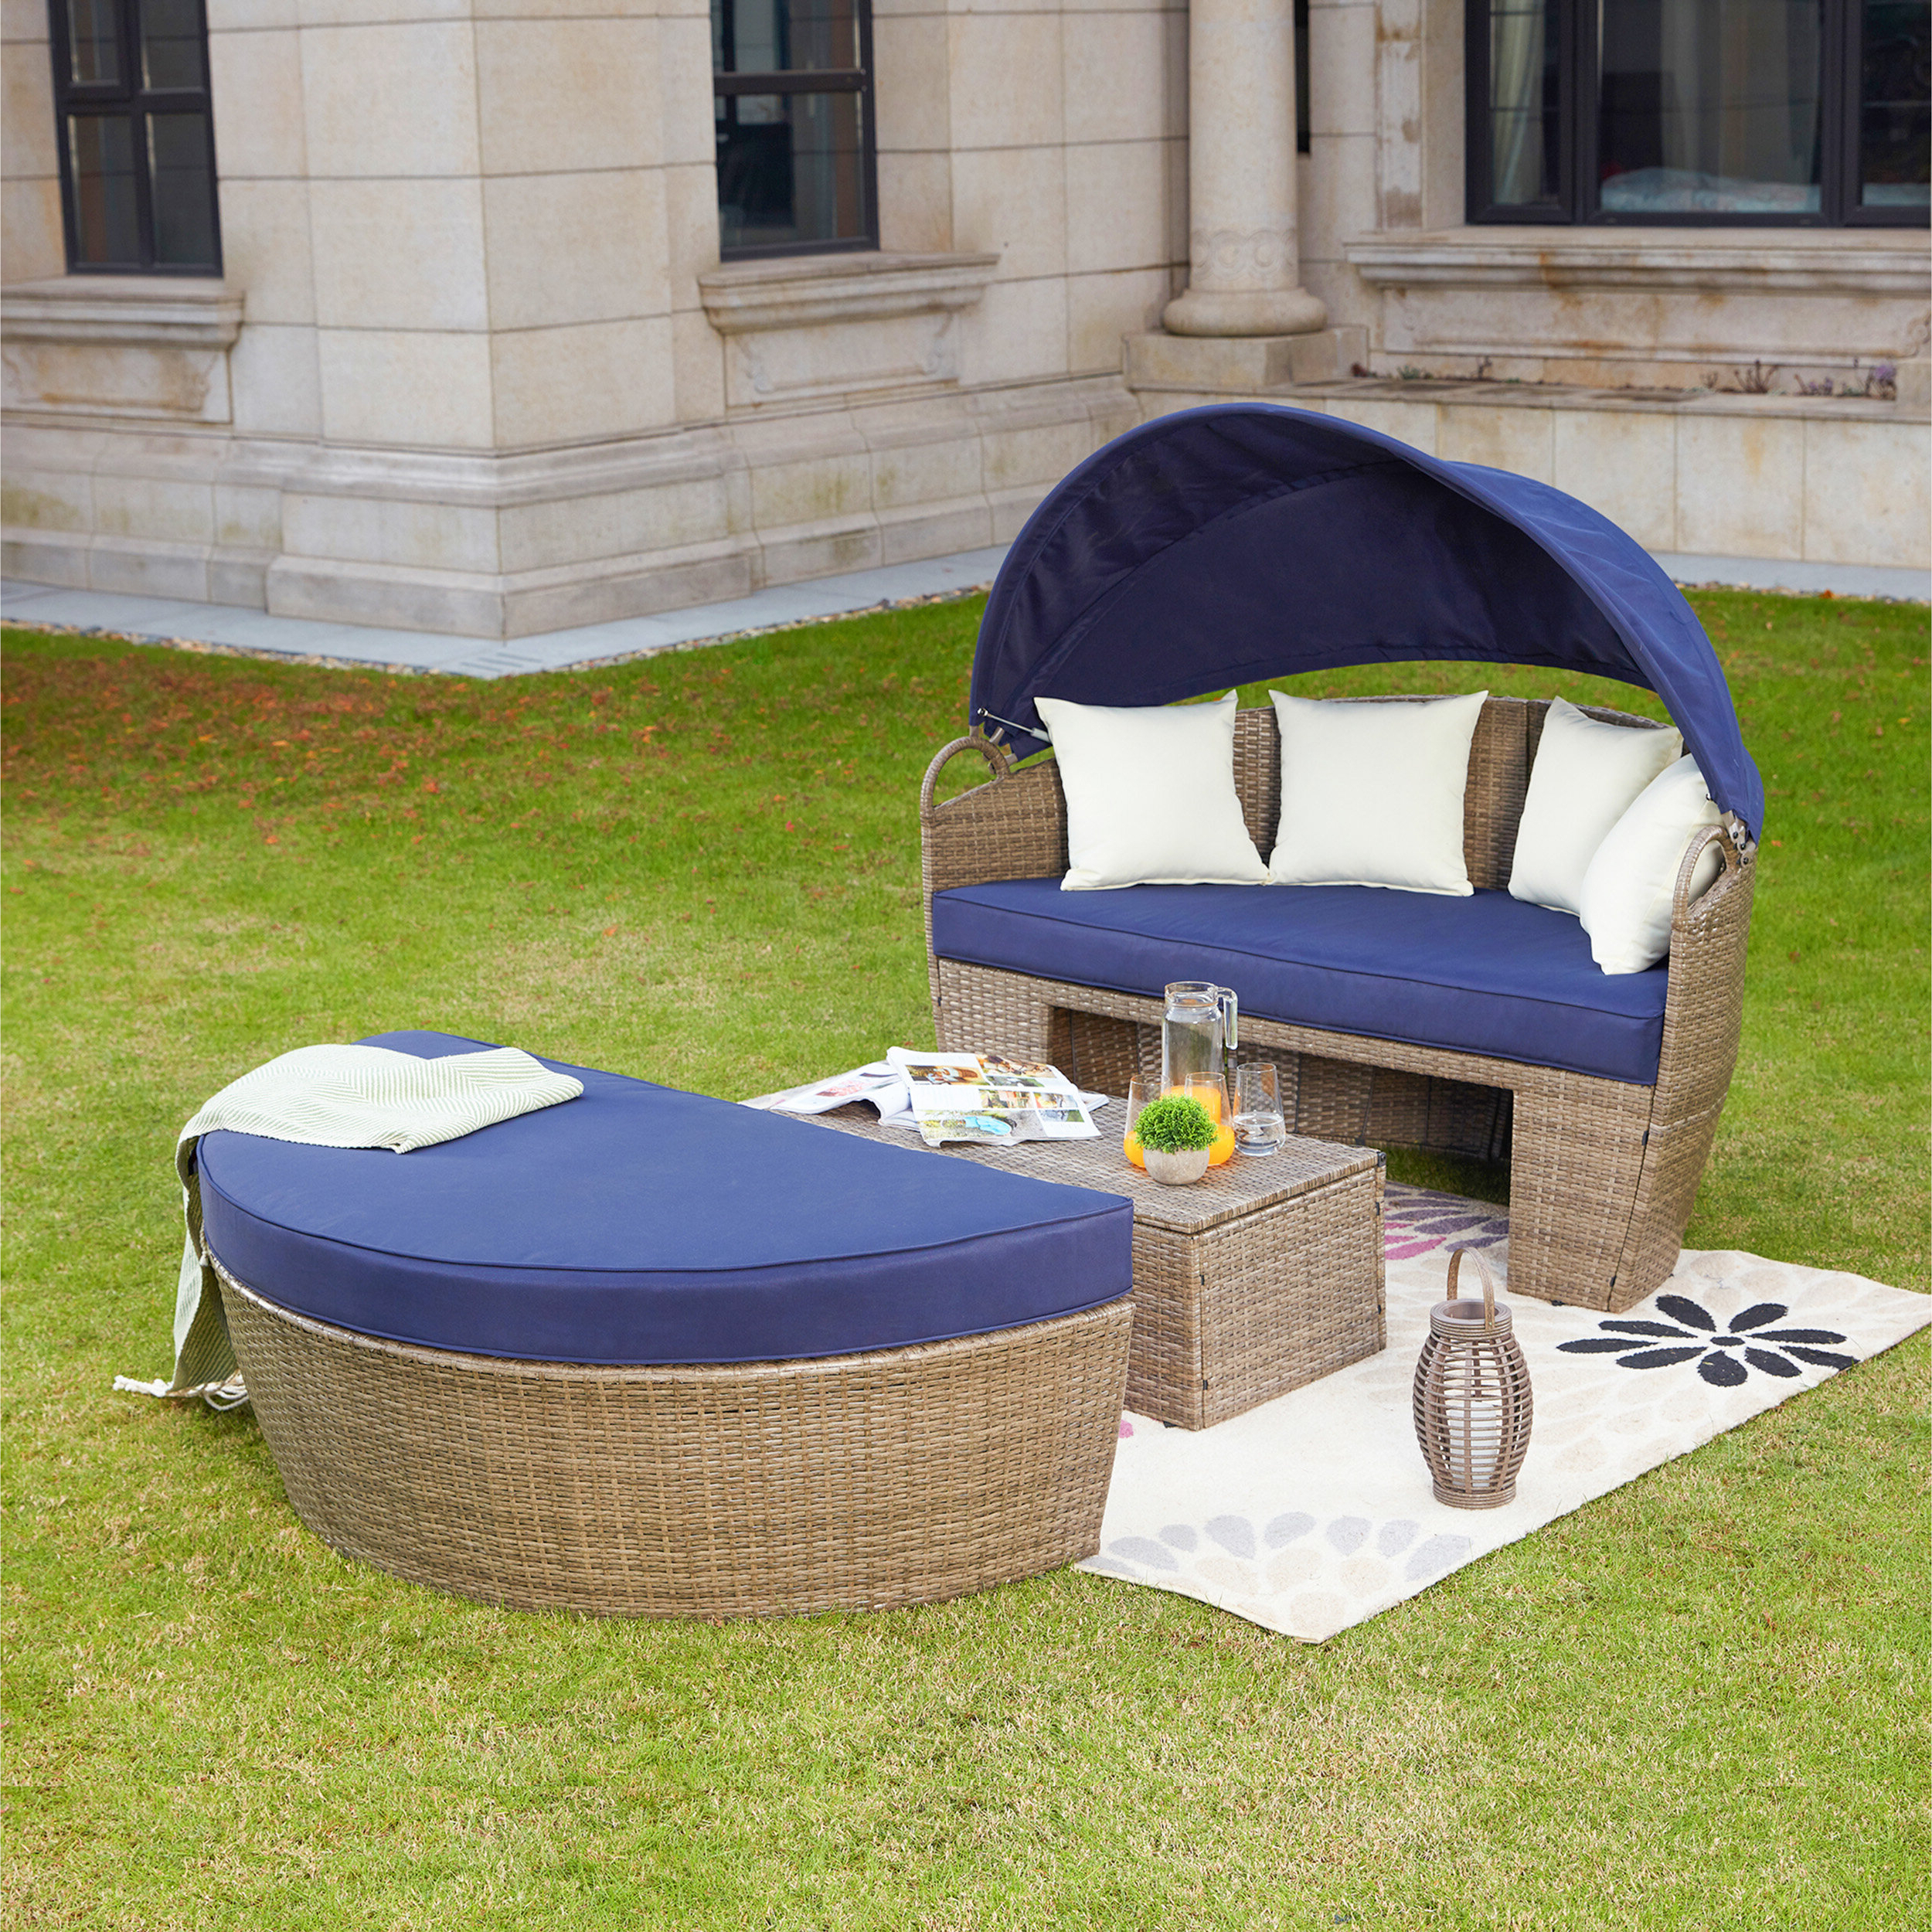 Popular Modern Outdoor Daybeds (Gallery 8 of 20)